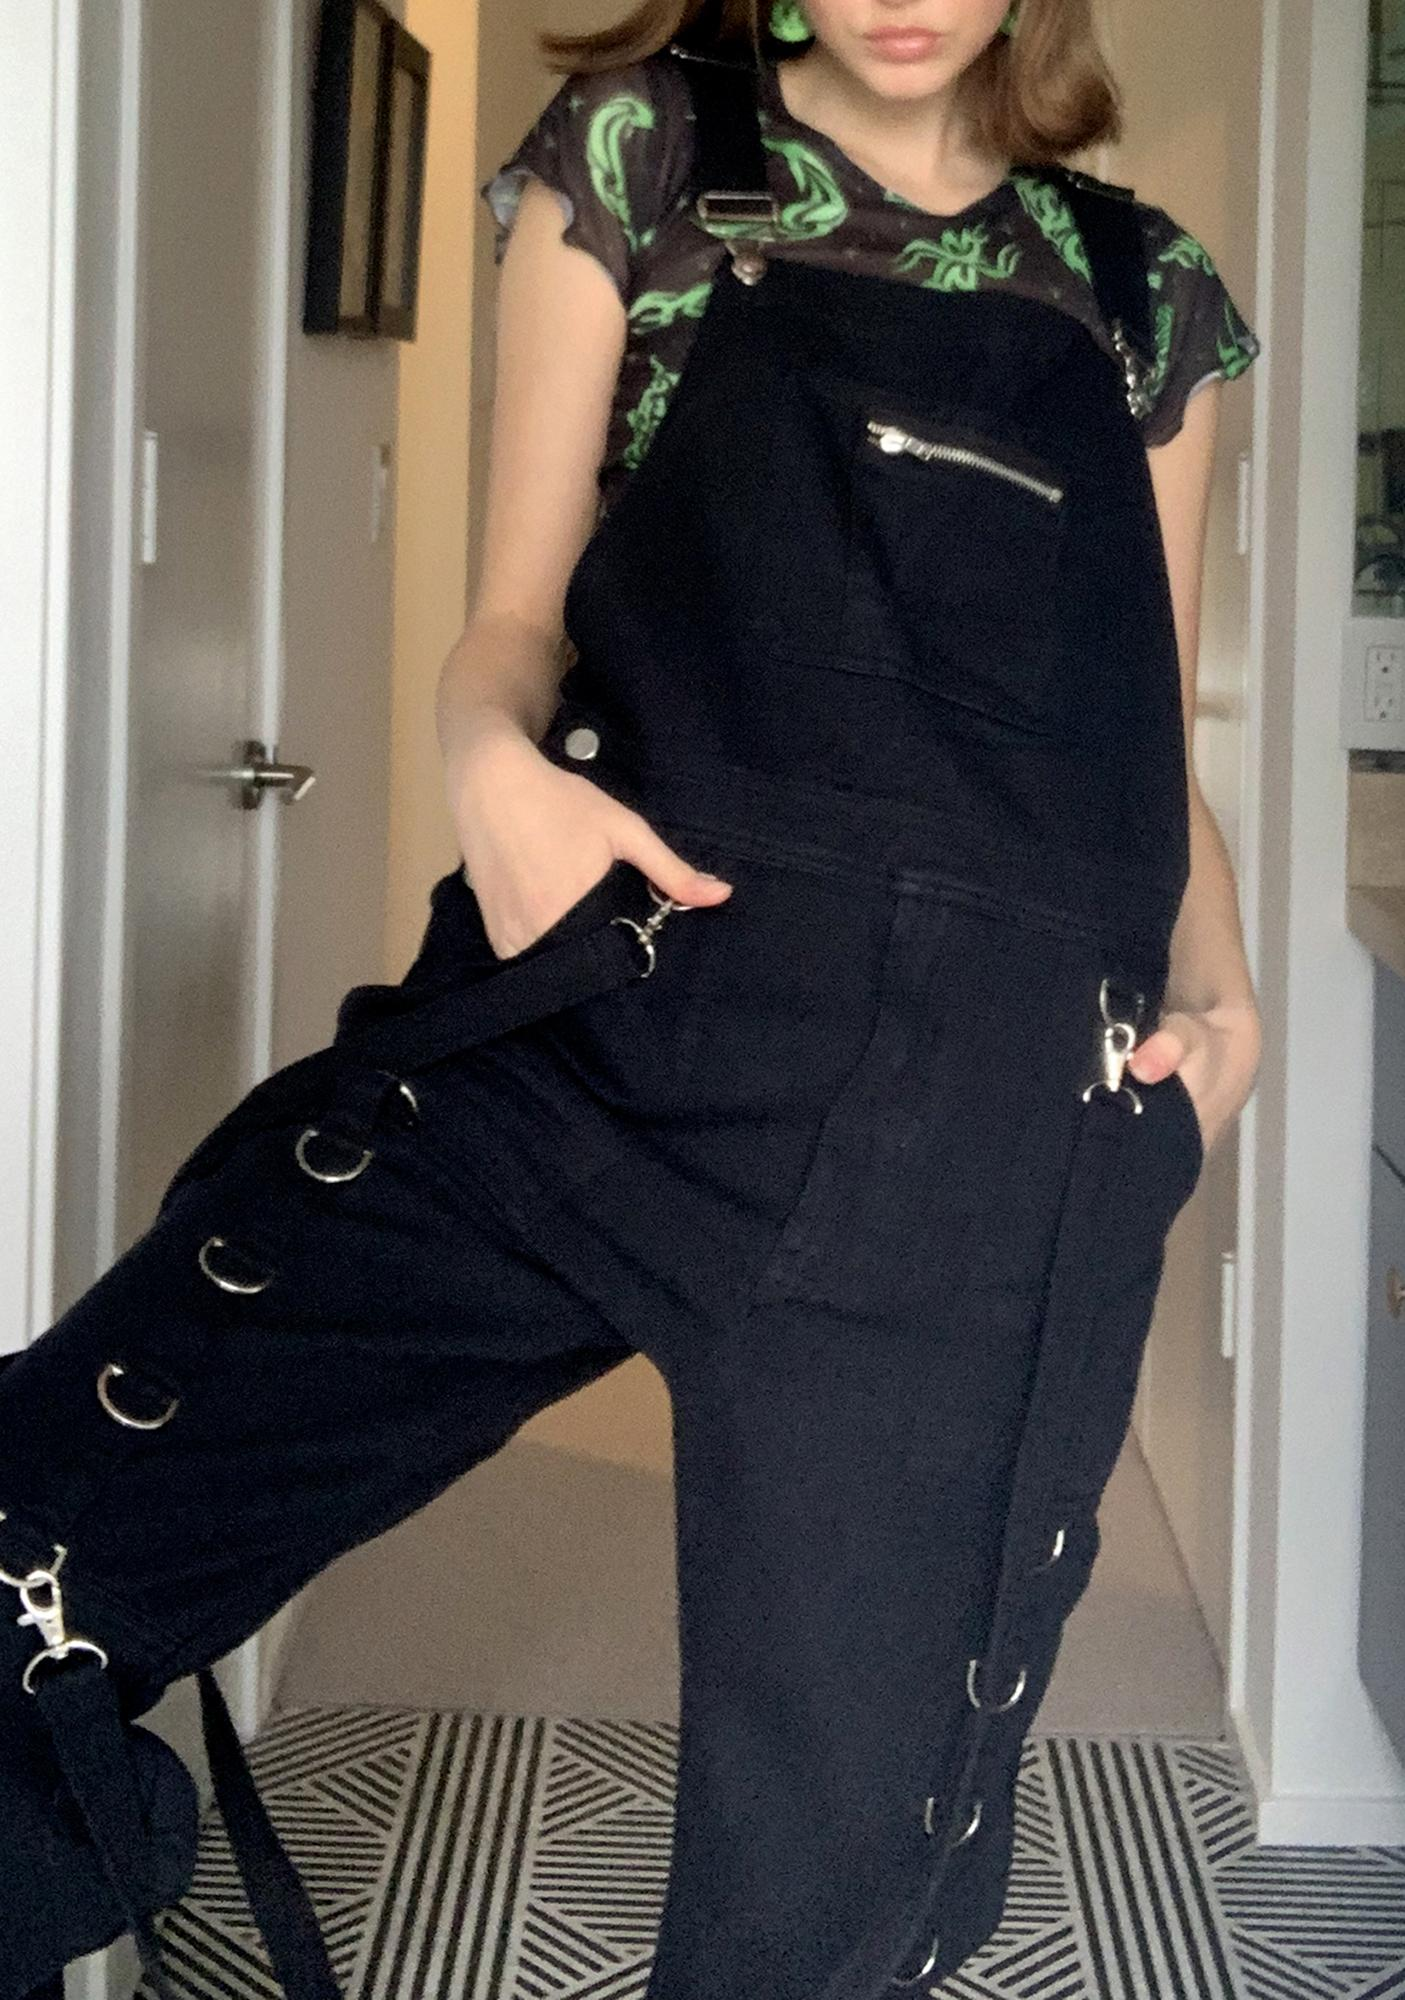 HOROSCOPEZ Crime Of Passion Bondage Overalls